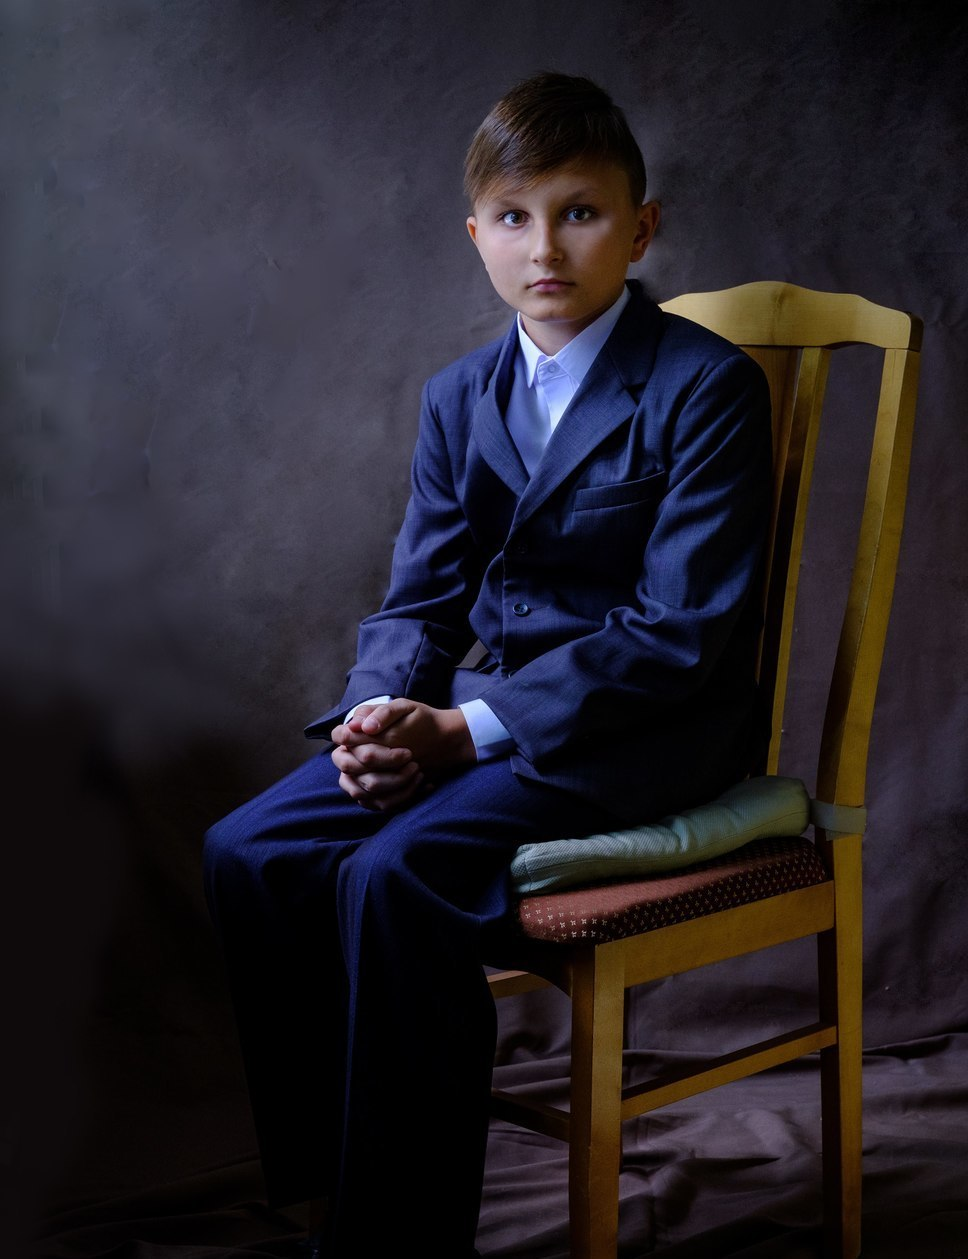 "<span style=""font-weight: bold;"">Сергей Д., 13 лет</span>"